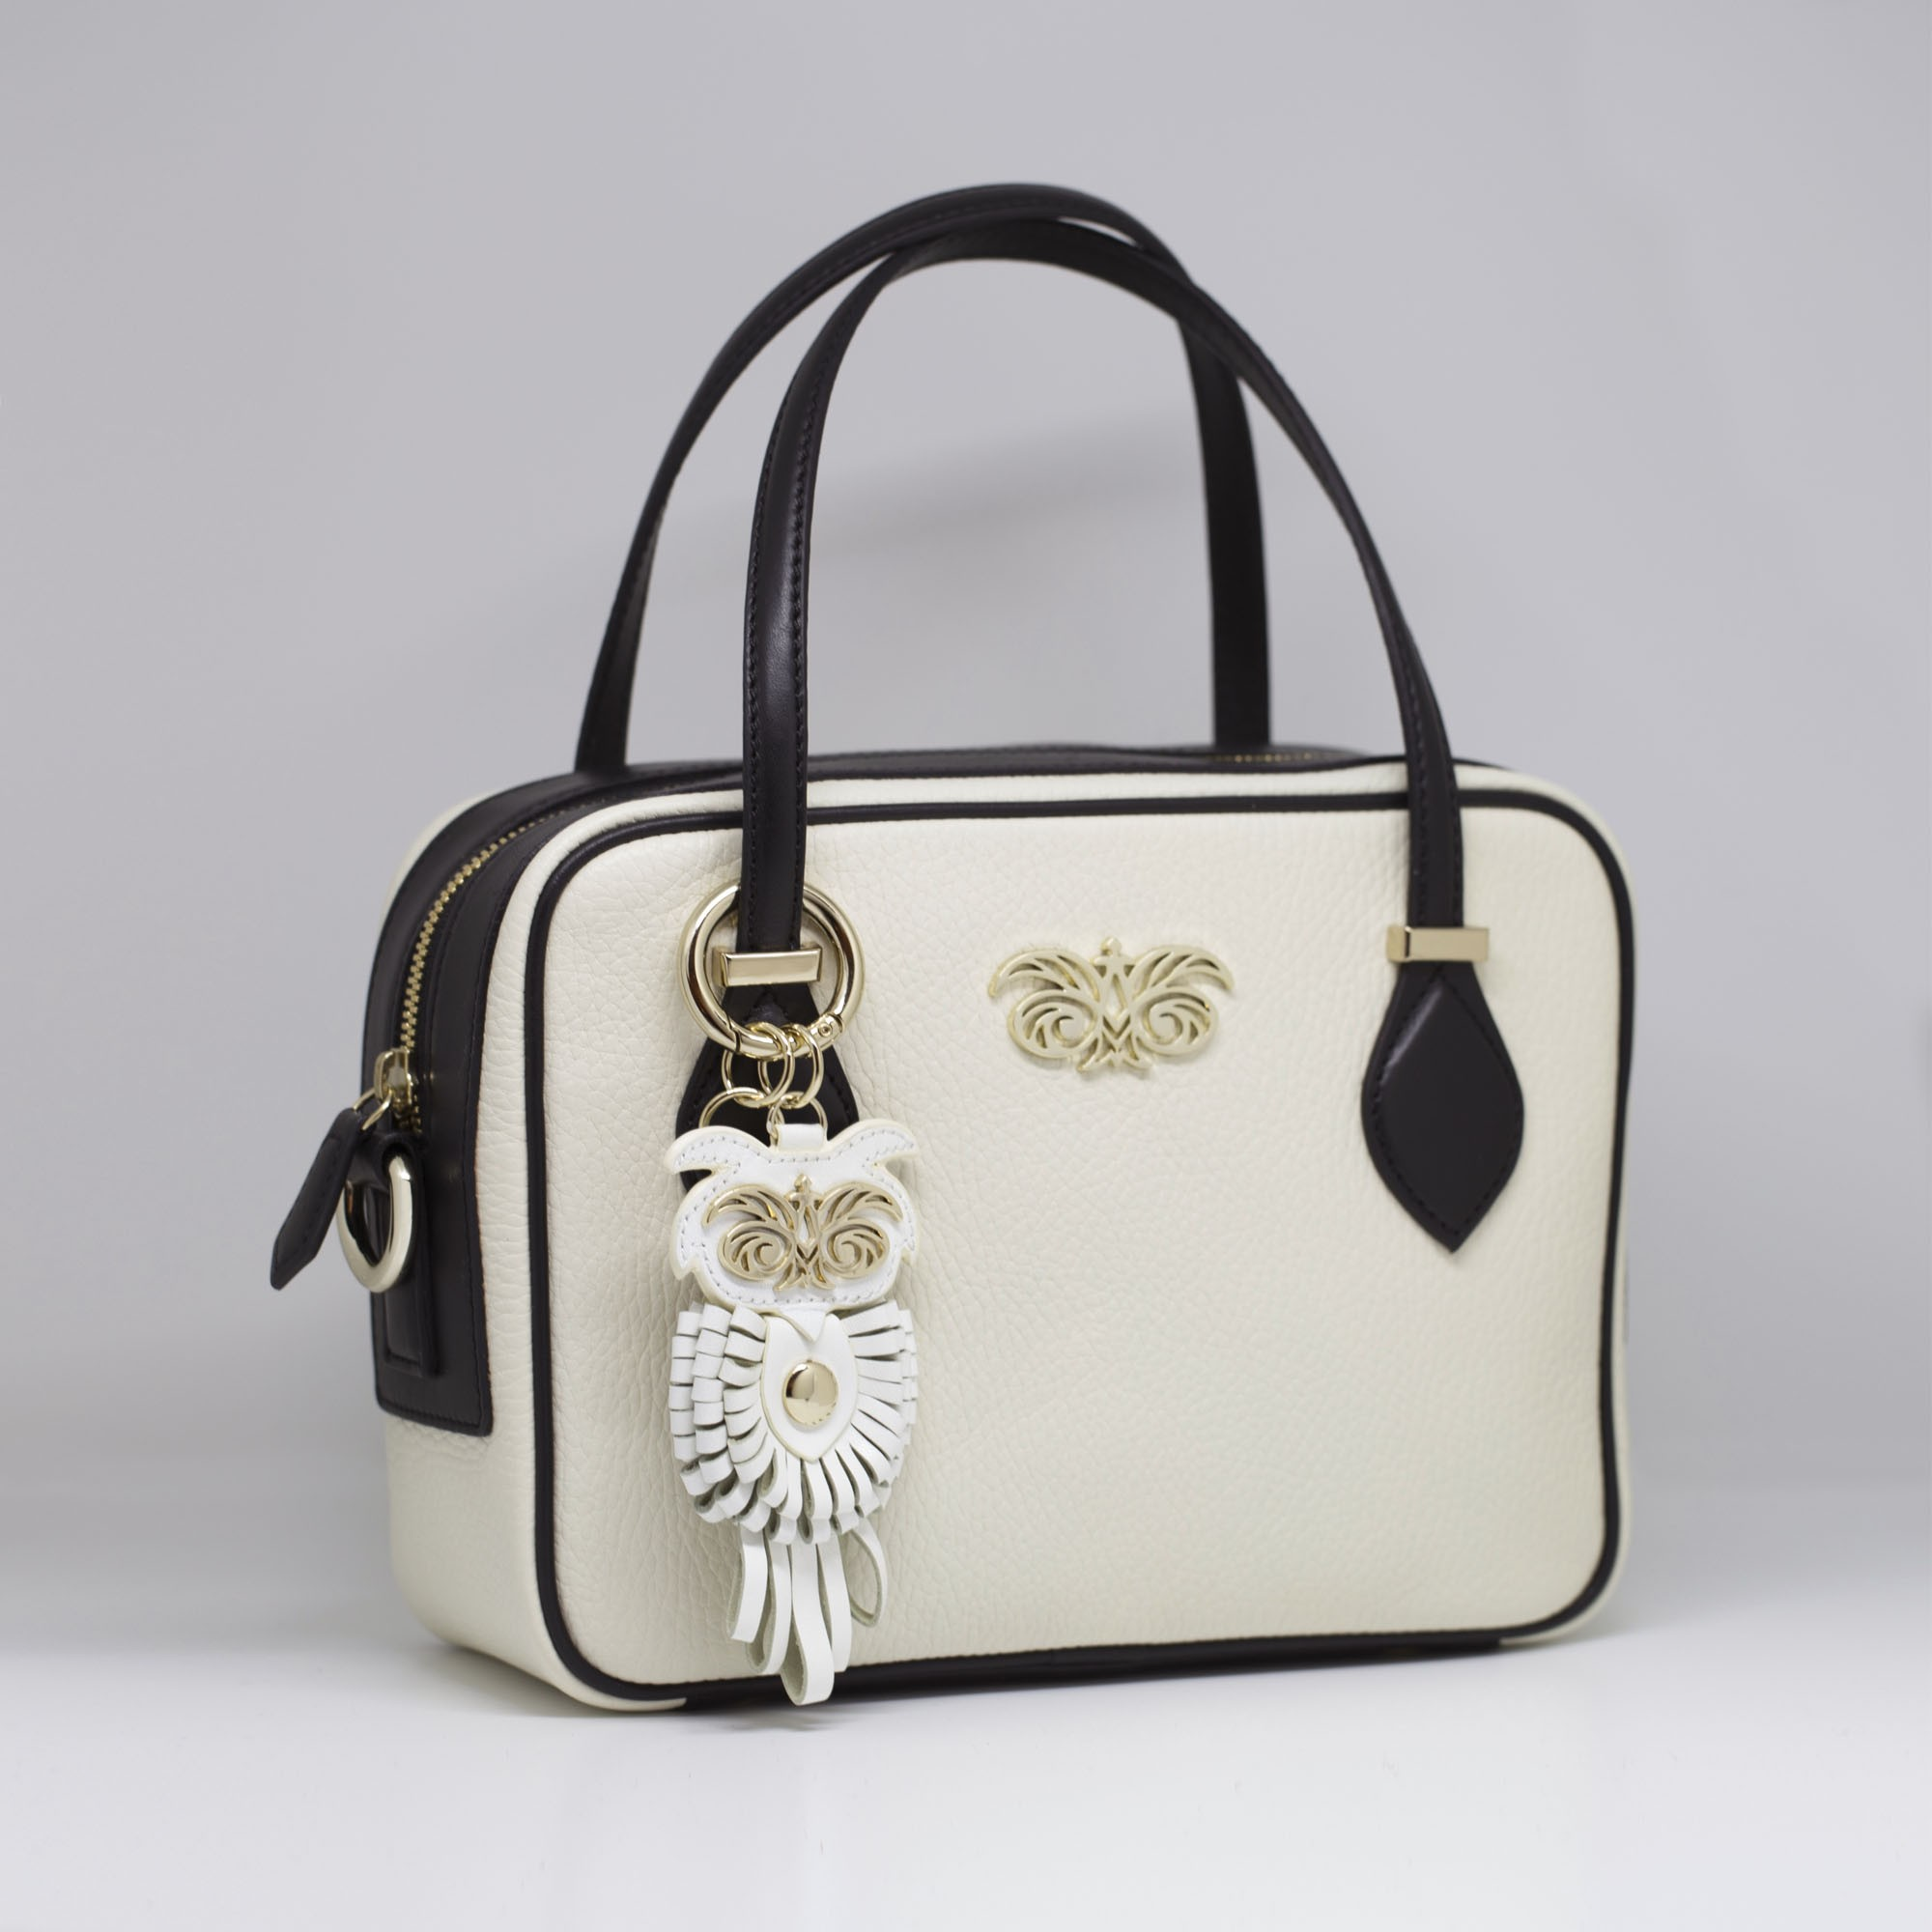 Key holder and bag charms OWL in white leather - attached on a handbag